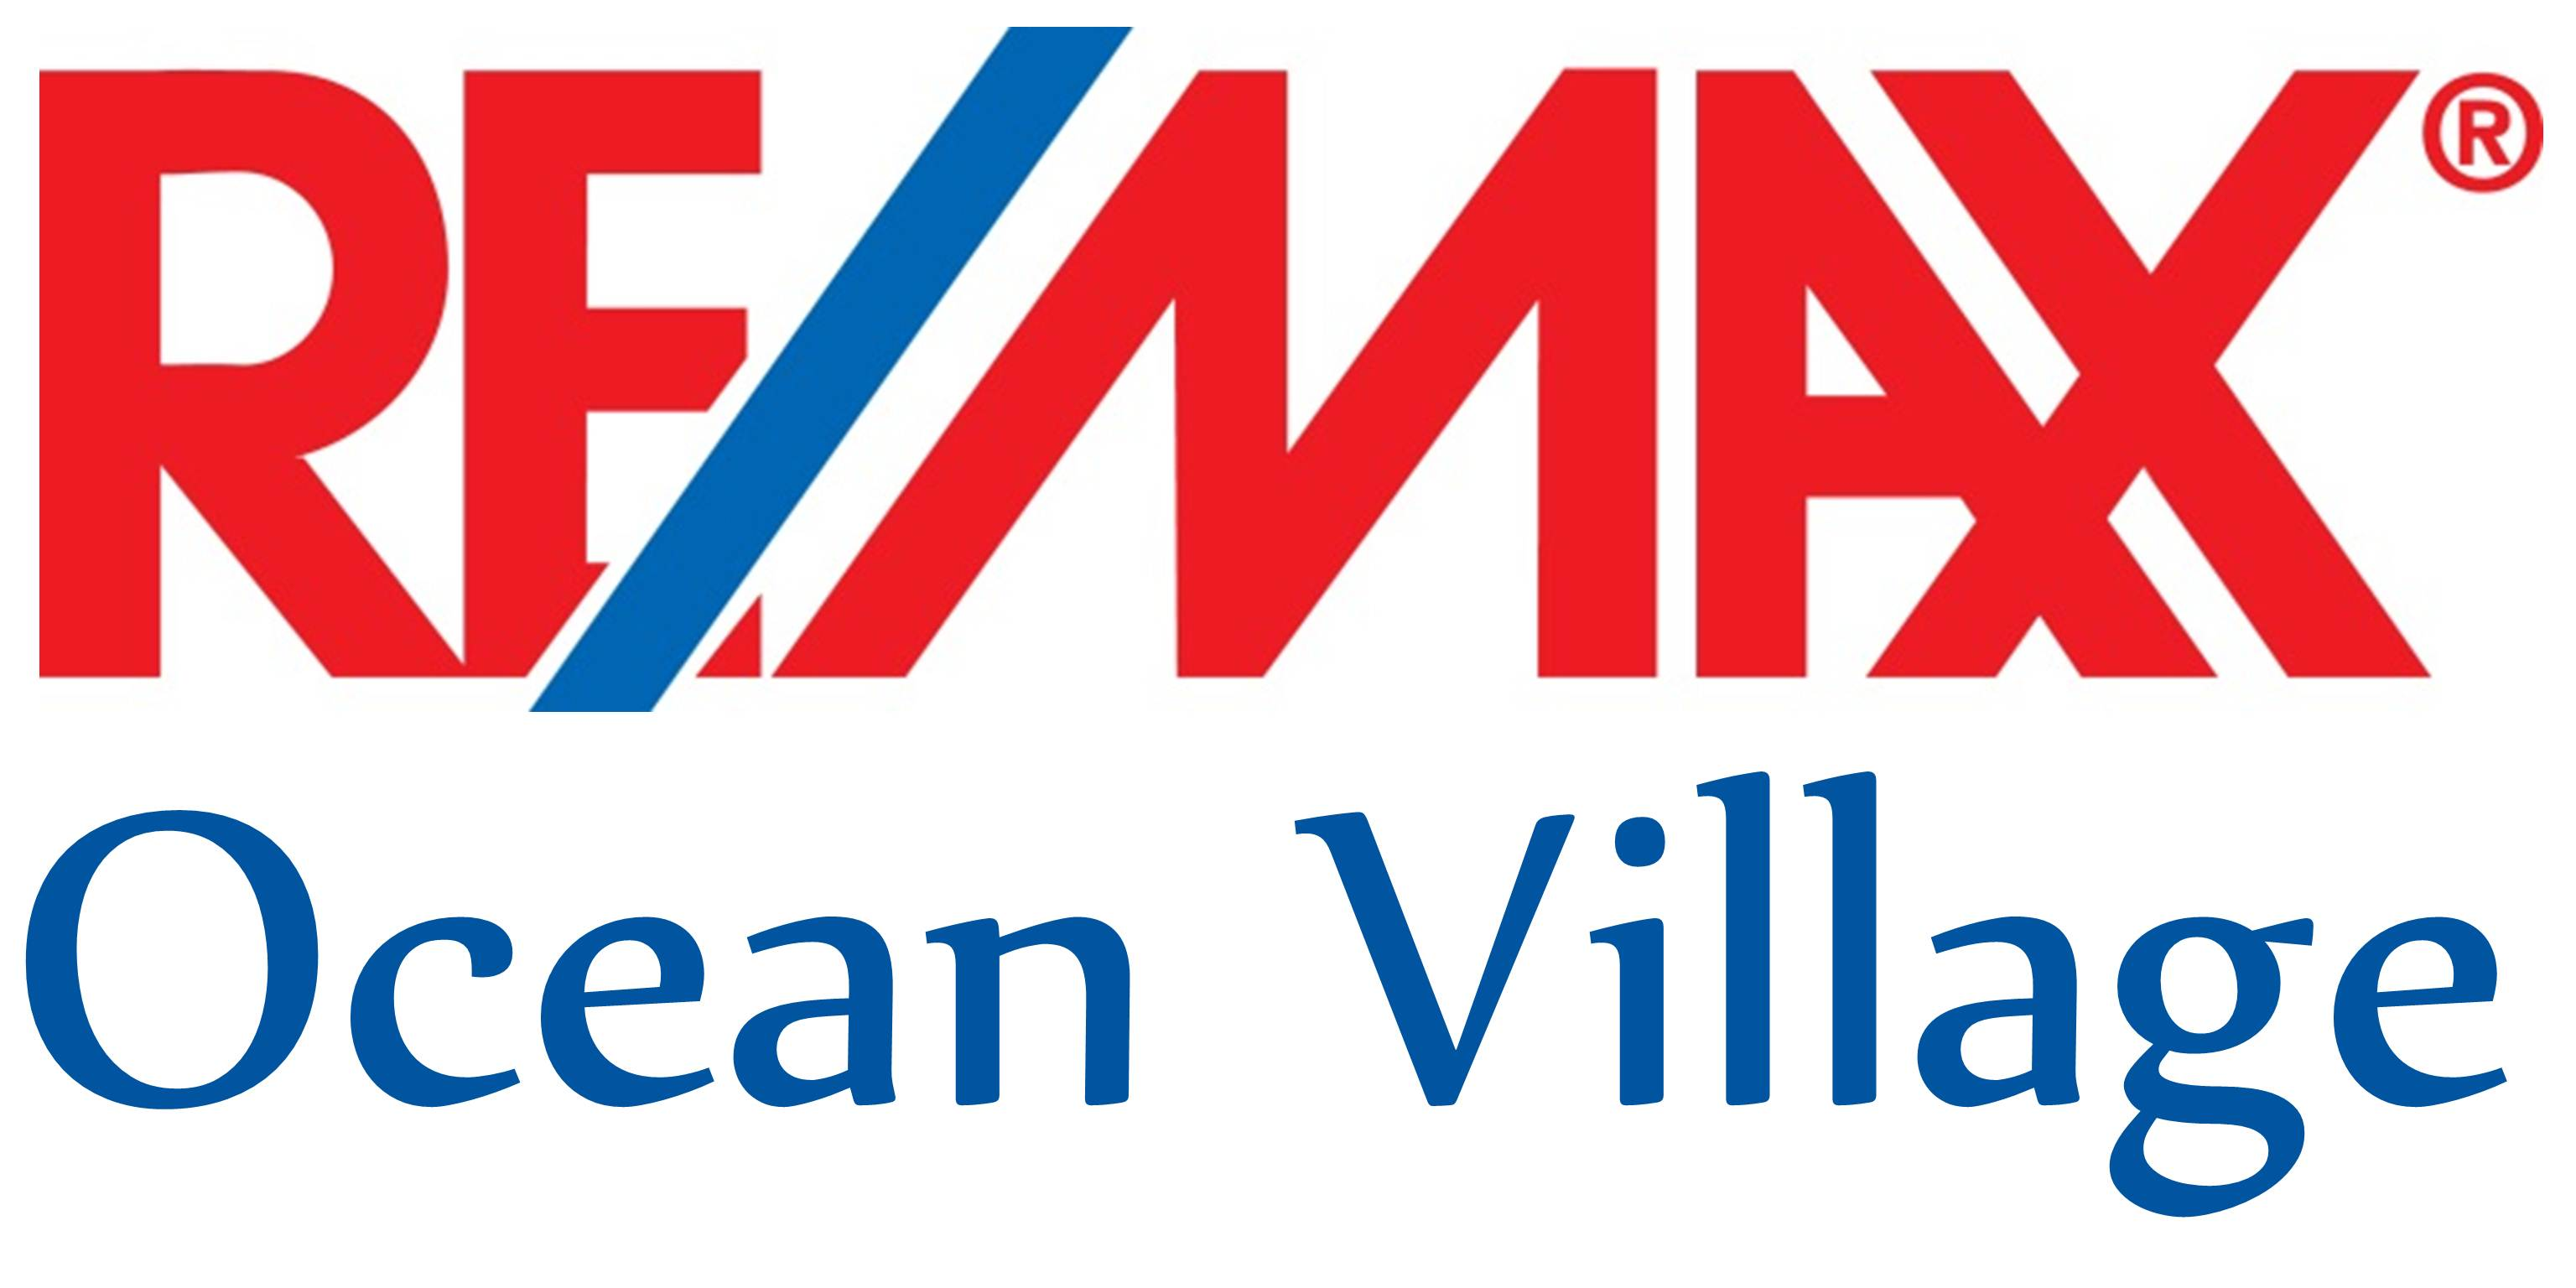 RE/MAX Ocean Village Website